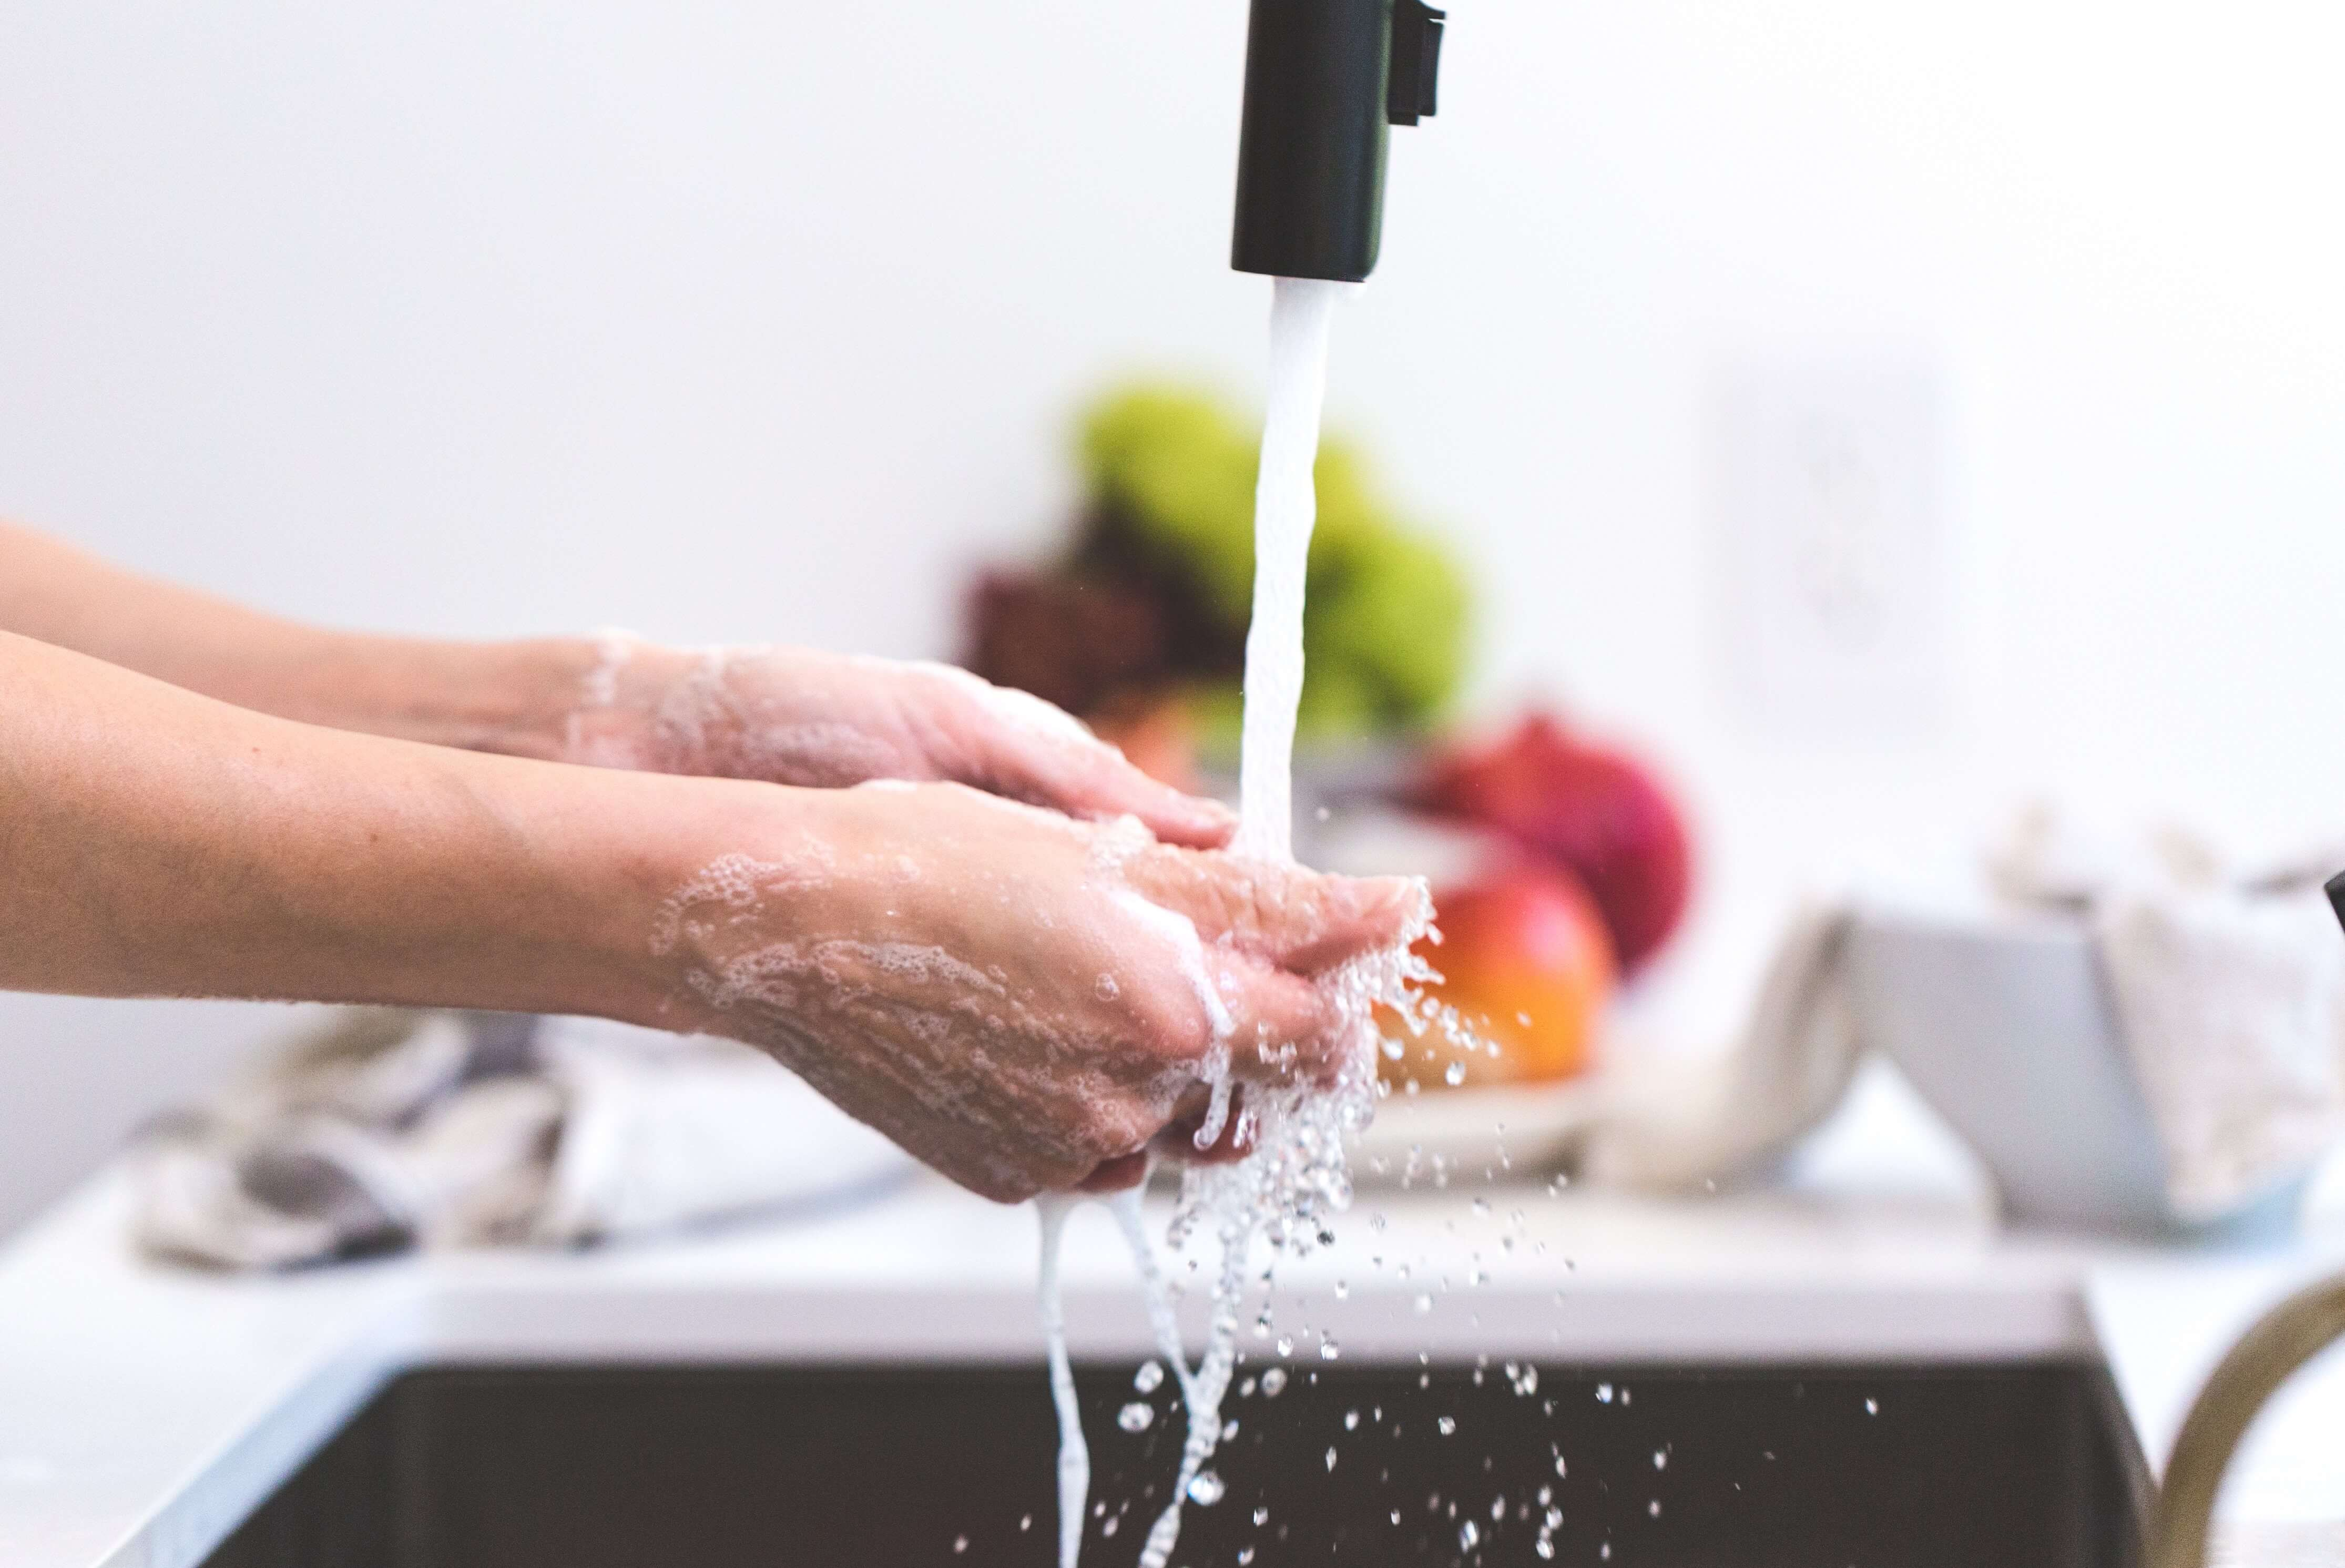 garbage disposal maintenance in Illinois by Lake Cook Plumbing